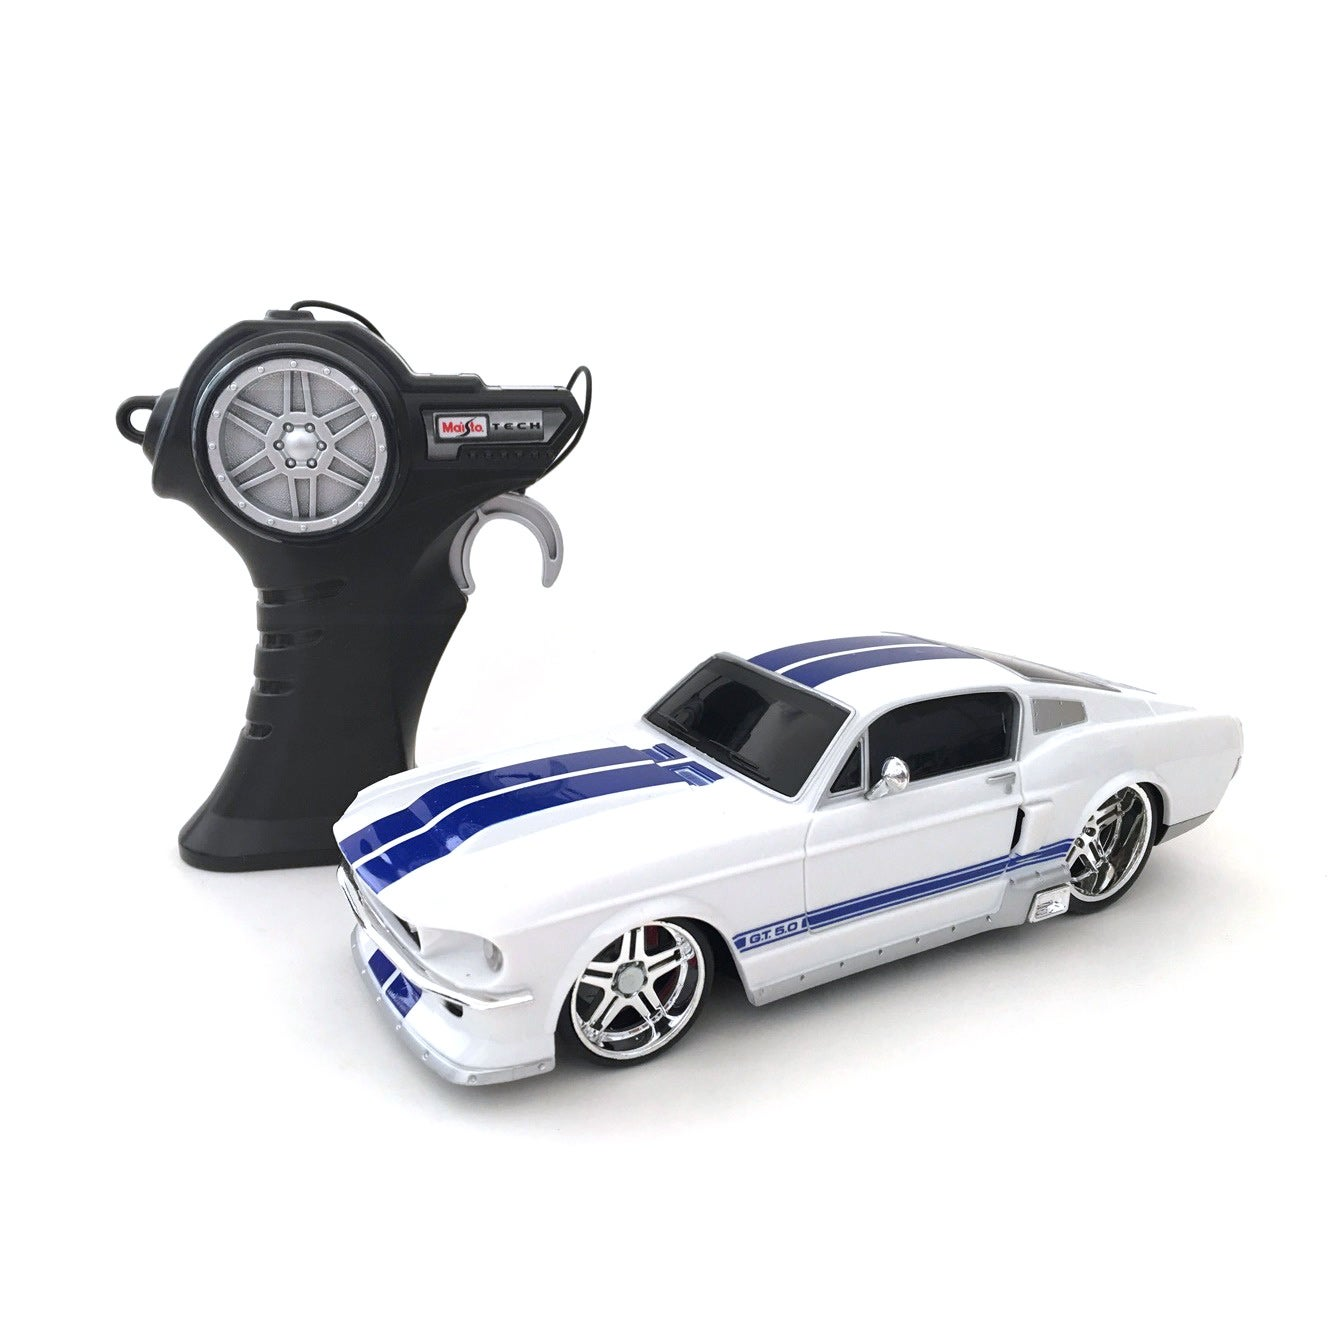 Maisto Ford Mustang GT (R/B) Remote Control Car (1:24 Rem...